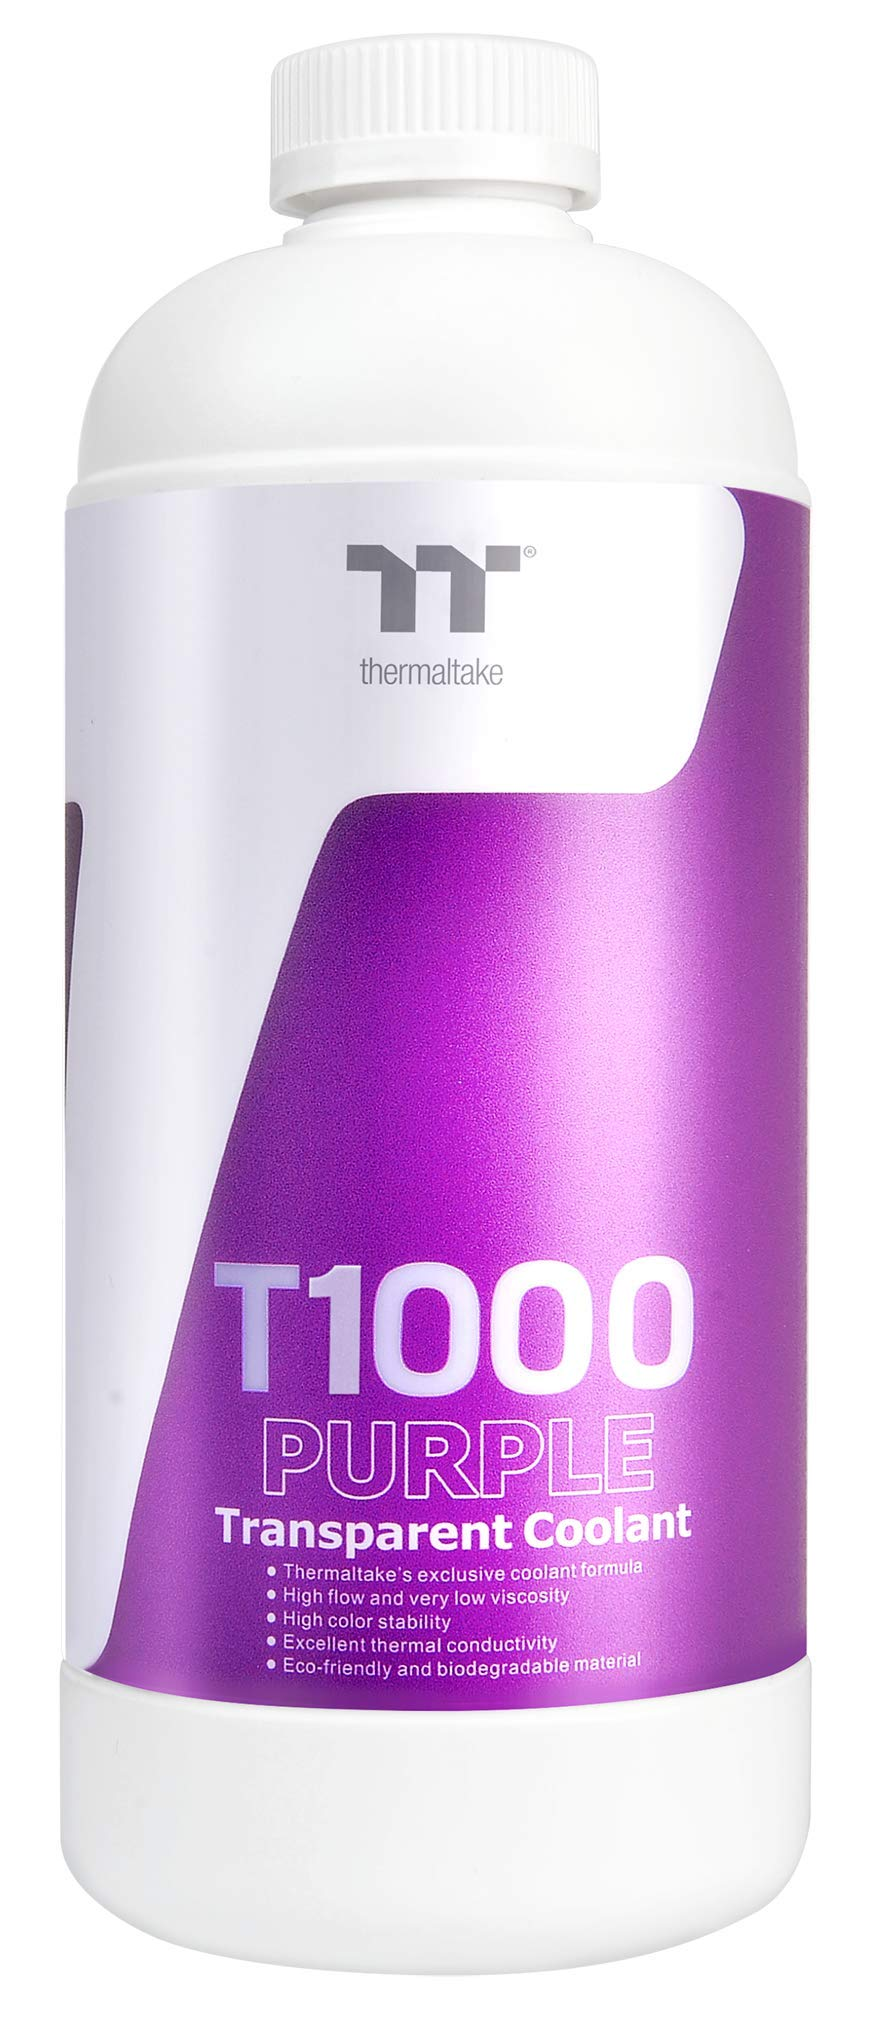 Thermaltake T1000 1000ml New Formula Purple Transparent Water Cooling Solution Anti-Corrosion Anti-Freeze Minimize Precipitation CL-W245-OS00PL-A